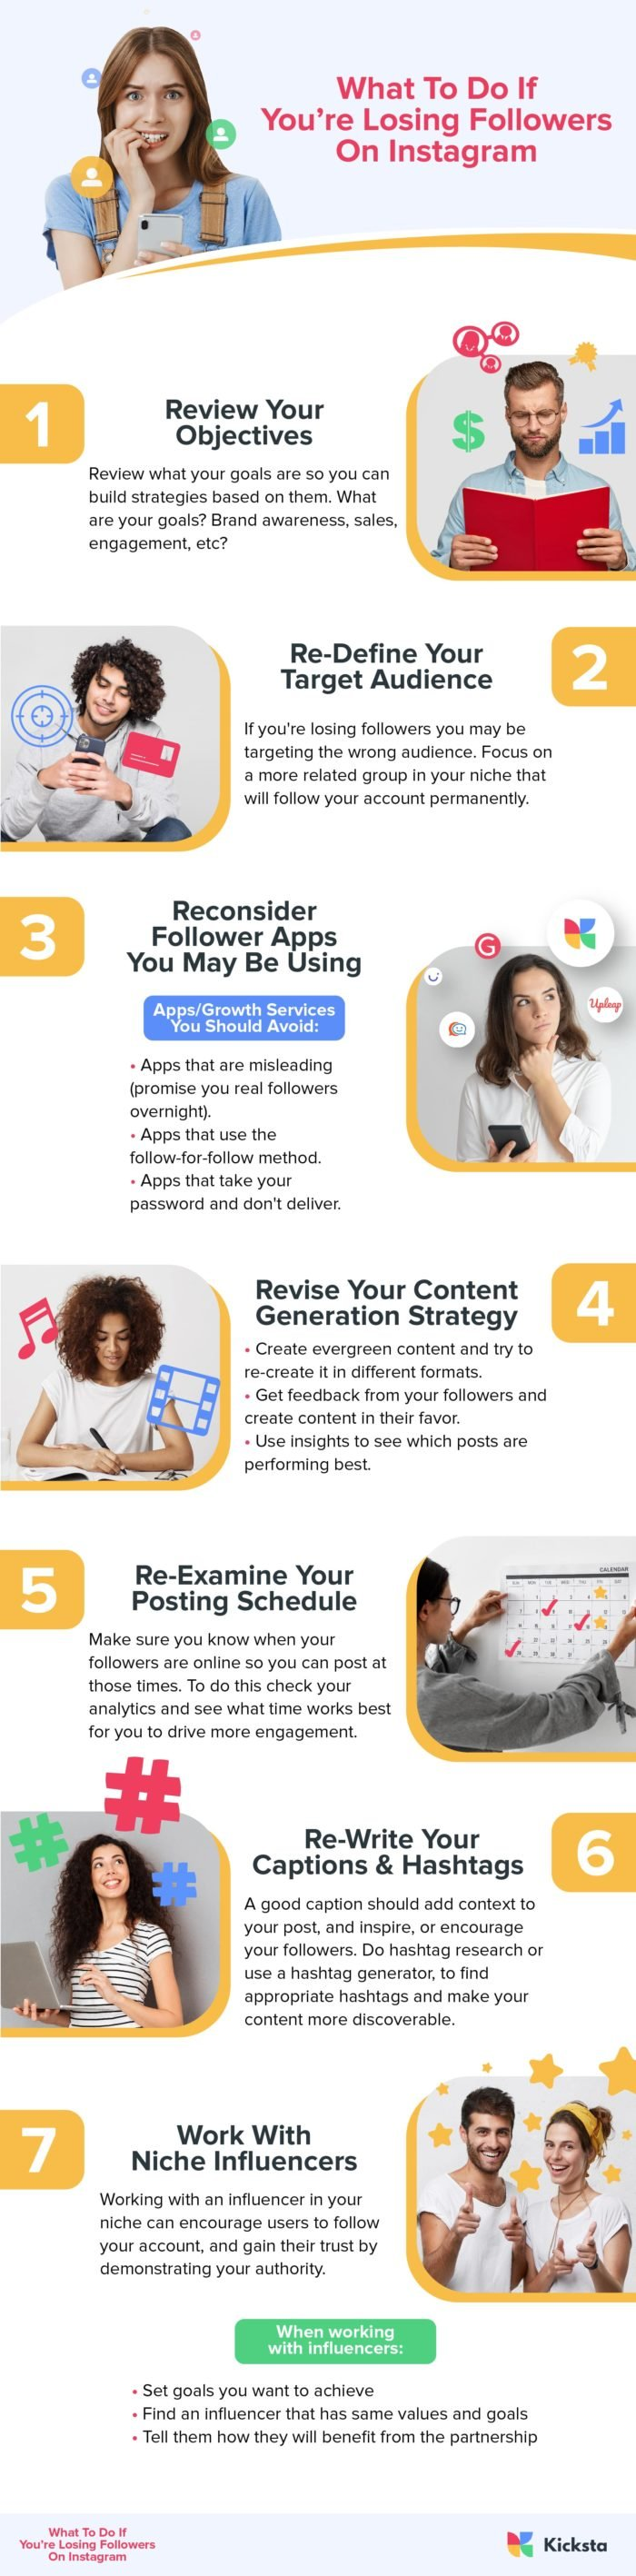 What To Do If You're Losing Followers On Instagram Infographic